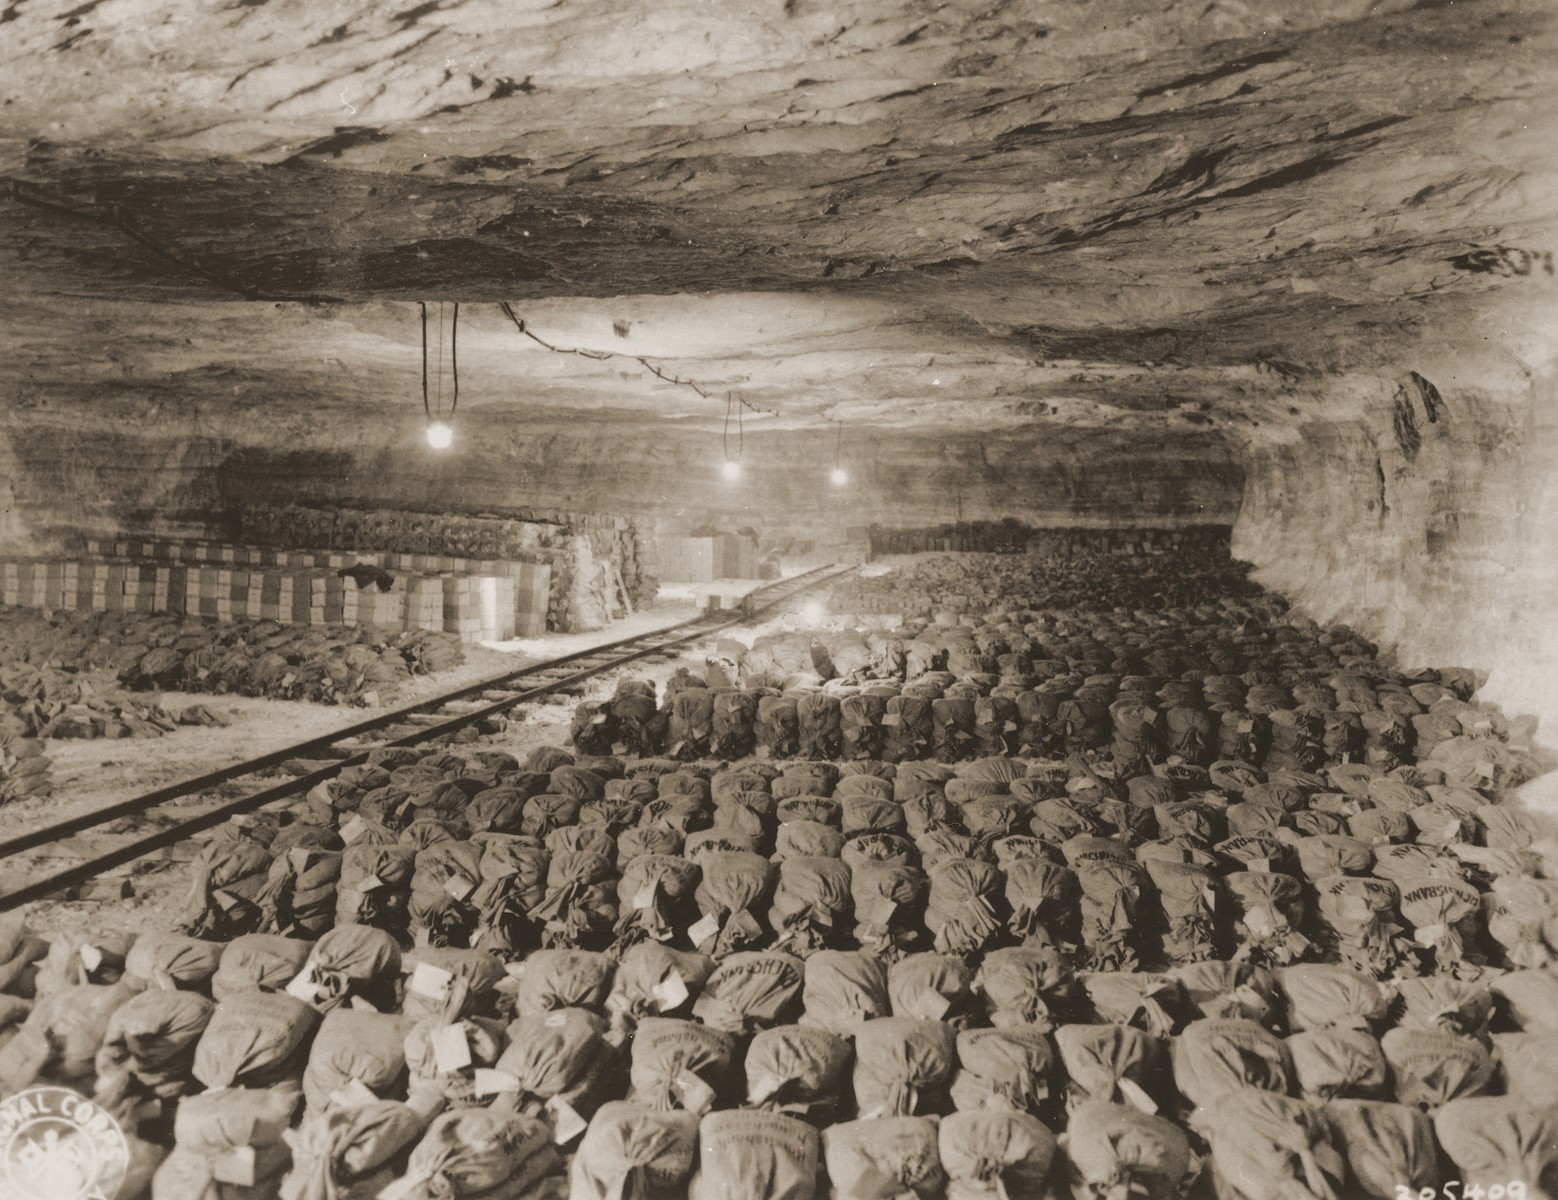 Bundles of currency, confiscated art, and other valuables from Berlin are uncovered by U.S. troops with the 90th Division, U.S. Third Army in the Merkers salt mine.